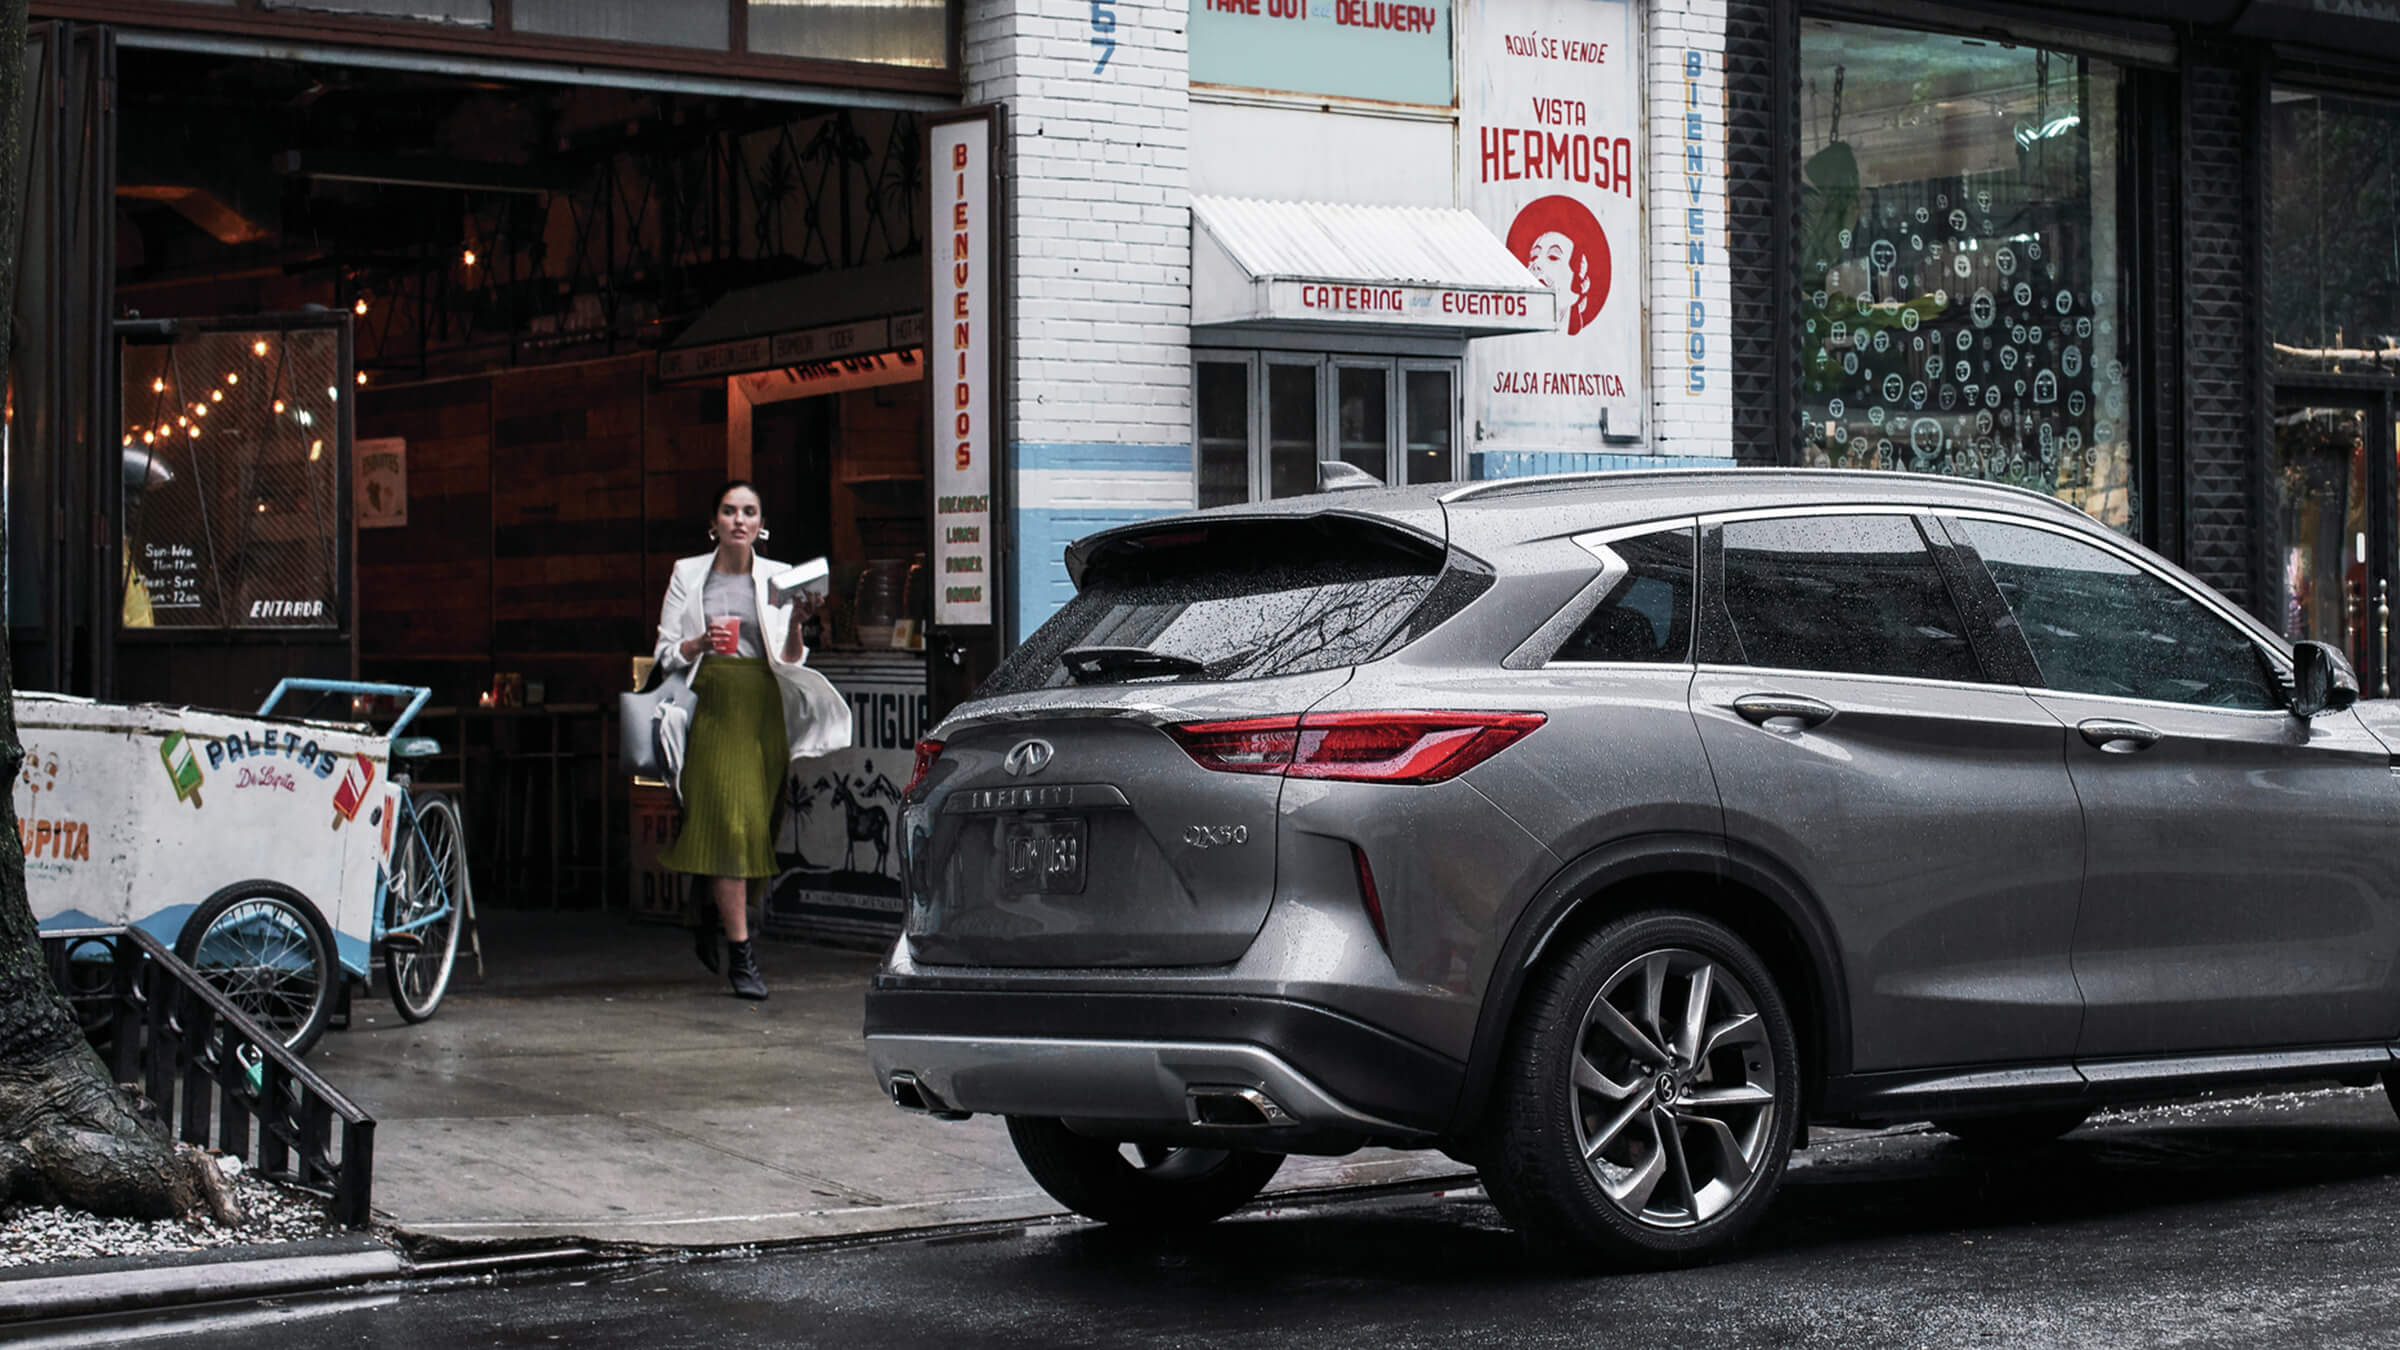 2020 INFINITI QX50 Luxury Crossover Rear Exterior